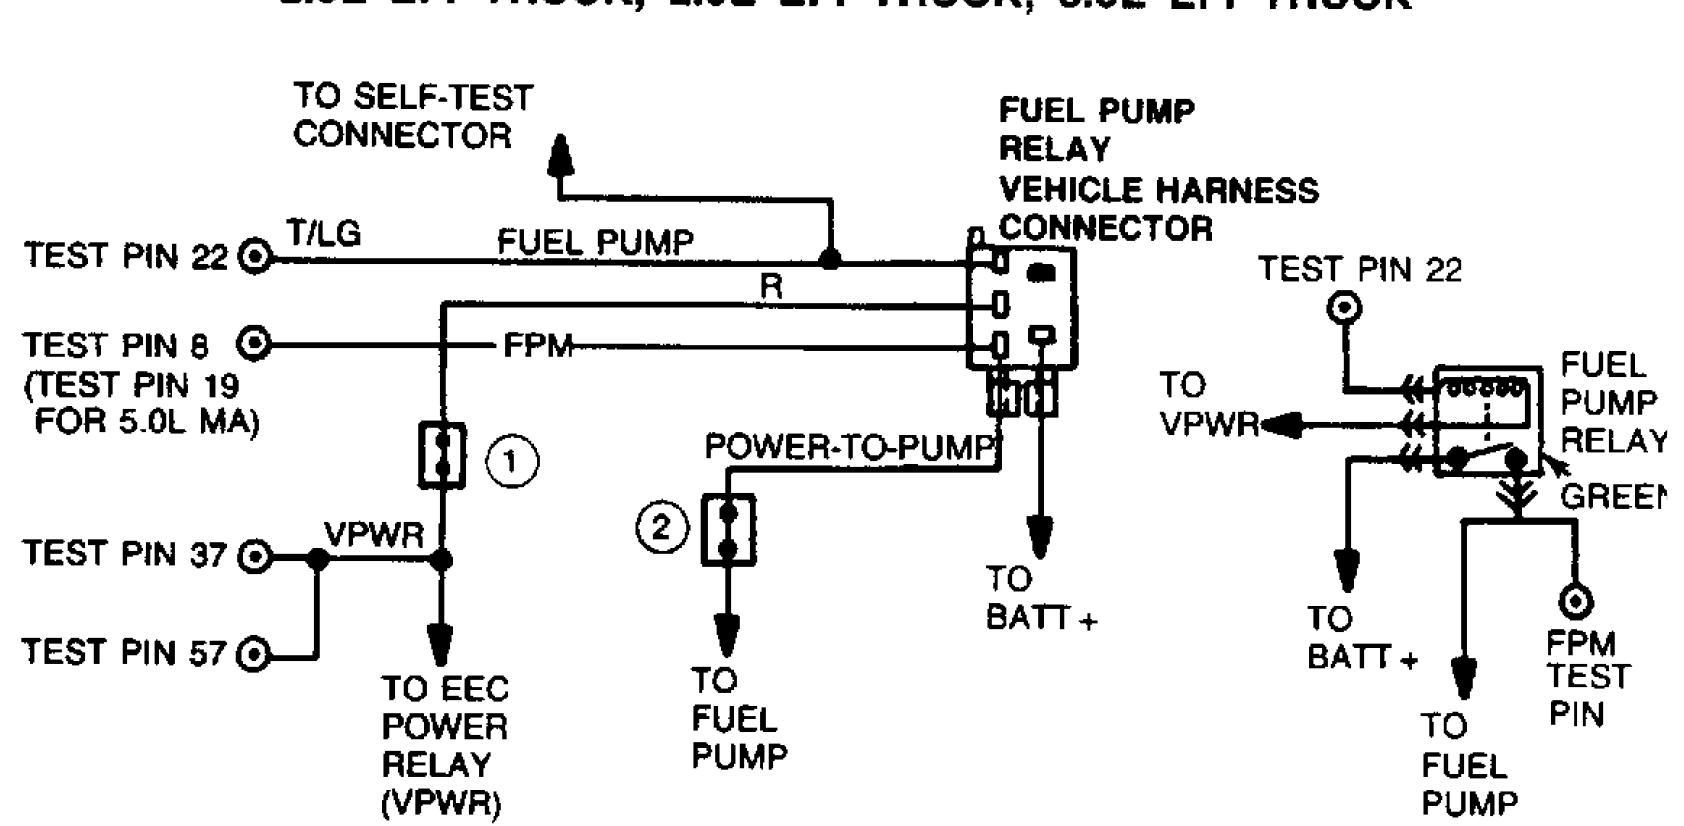 hight resolution of ford ranger fuel pump wiring diagram wiring diagram used 1994 ford ranger fuel pump relay wiring diagram 1994 ranger fuel pump wiring